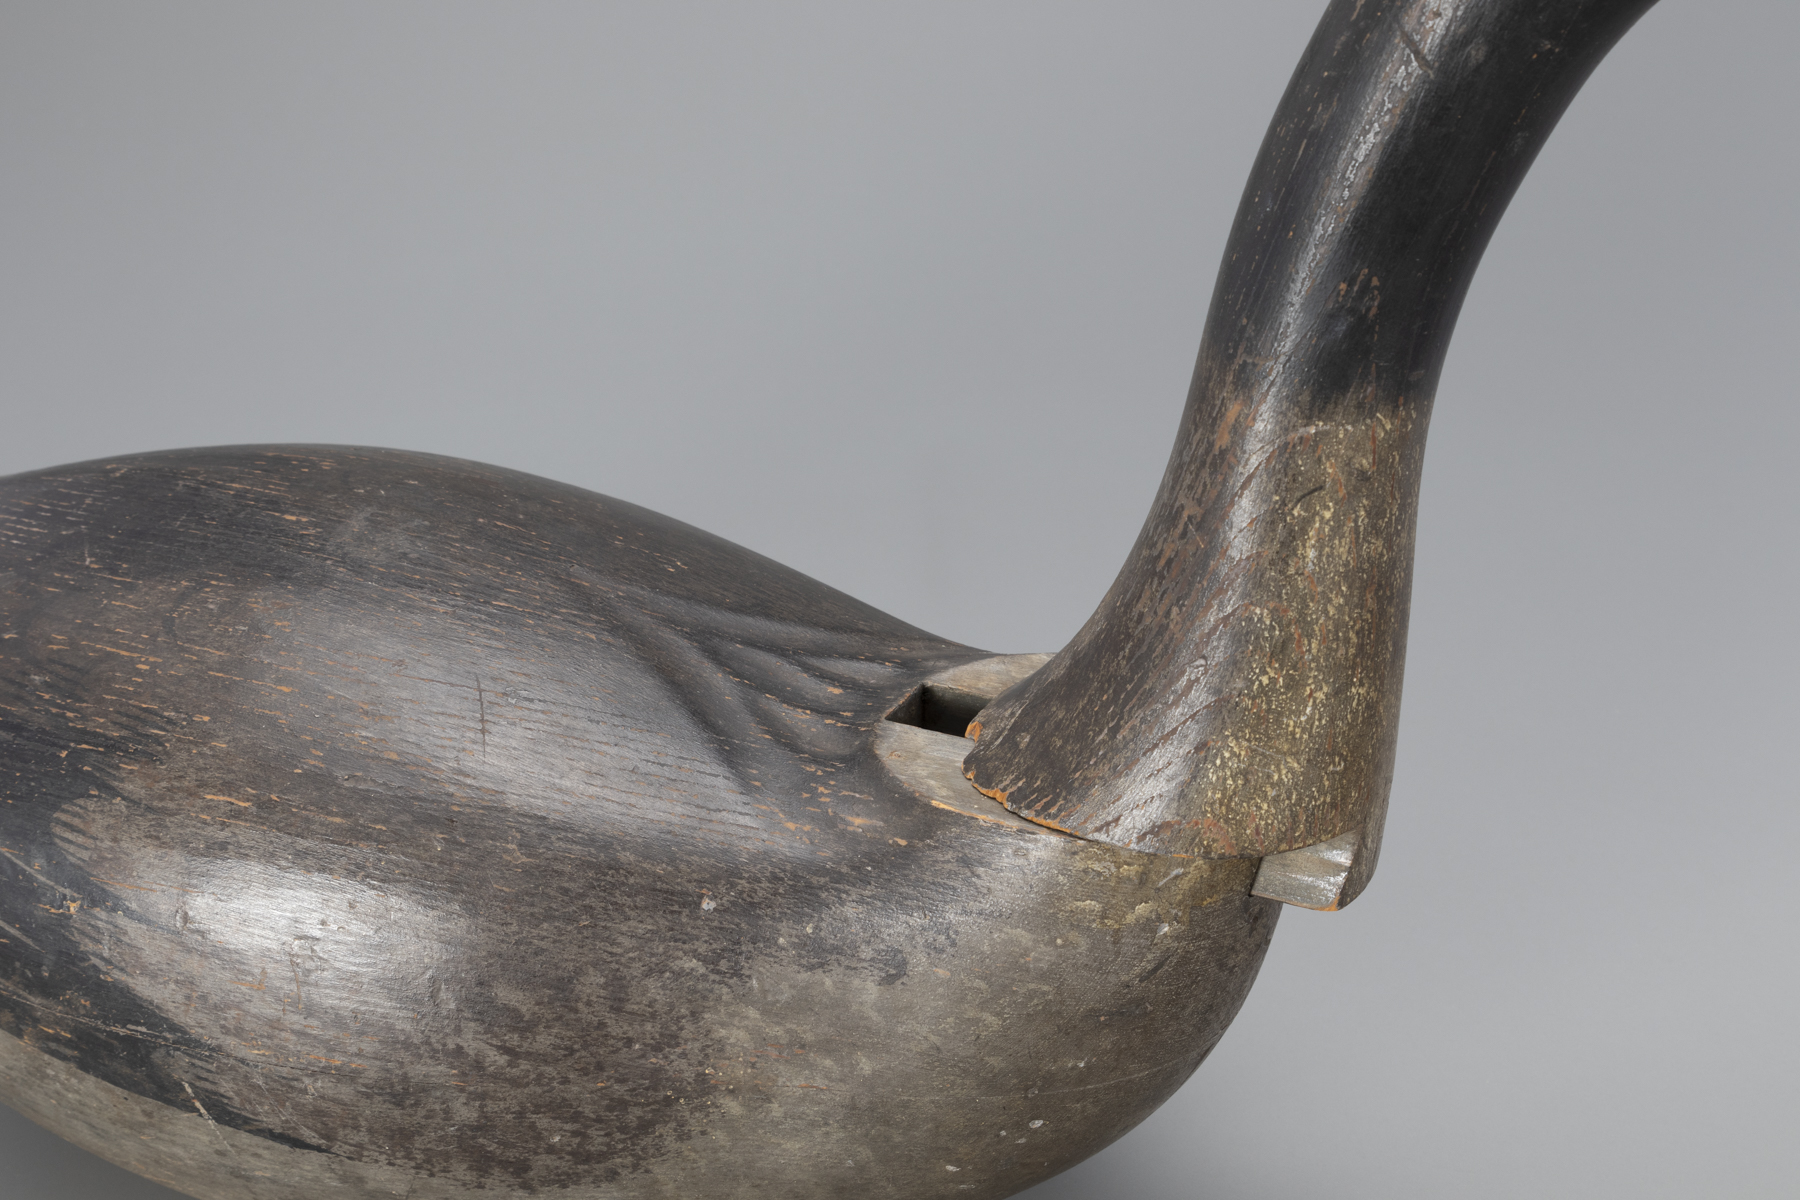 Detail shot of the Earnest-Gregory dovetailed goose decoy to show the head in place, but slightly slid out of the dovetail join.